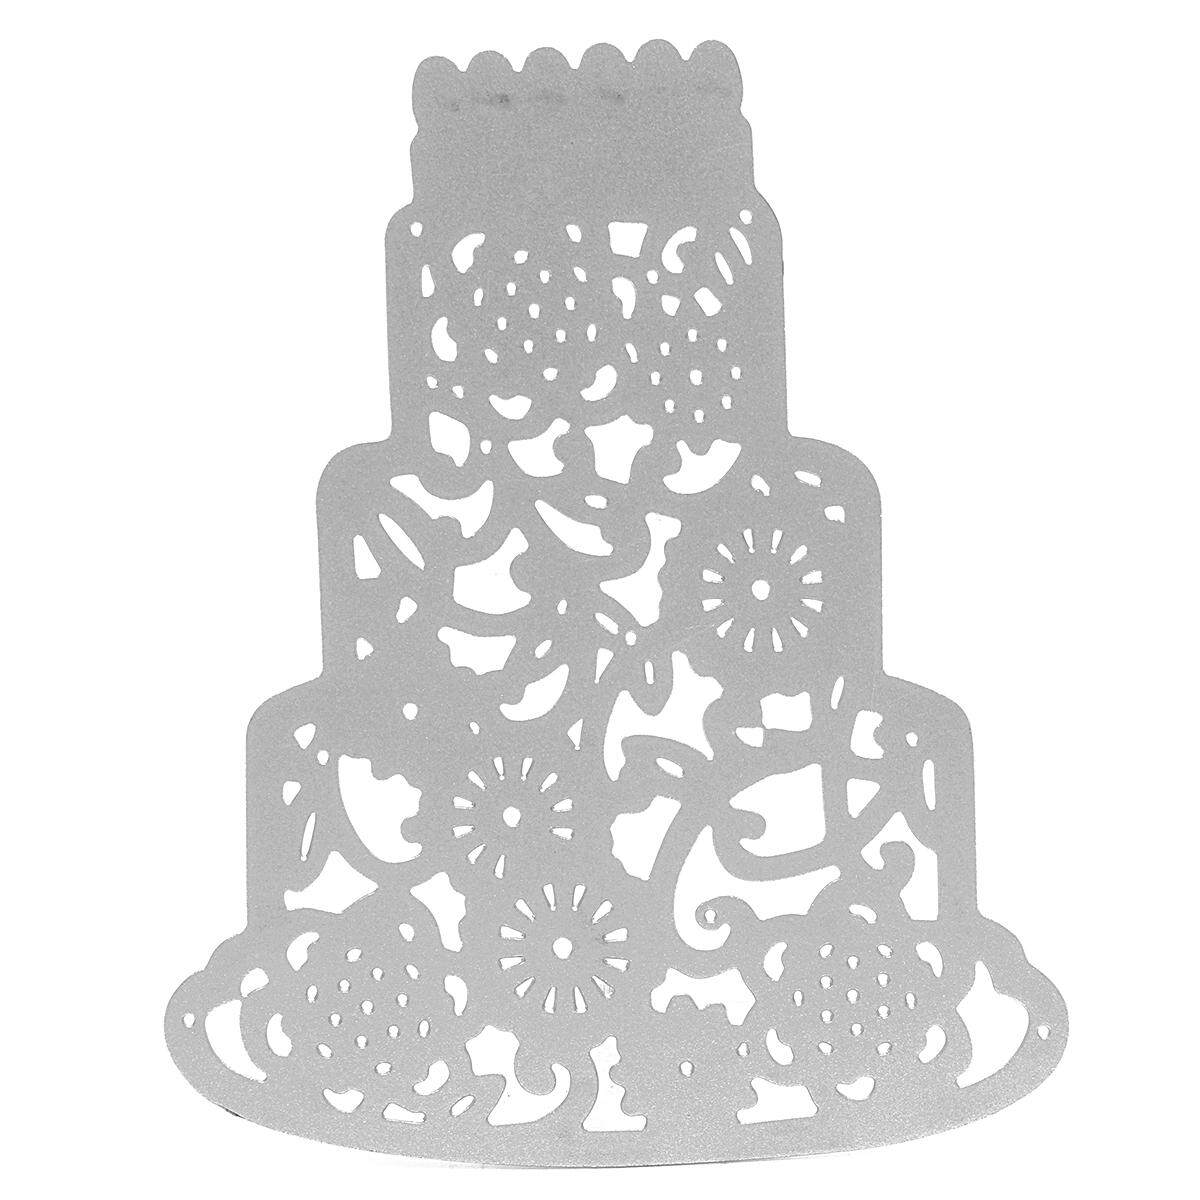 3 Tier Cake Cutting Dies Stencil For Diy Scrapbooking Embossing Decor Craft Card By Glimmer.